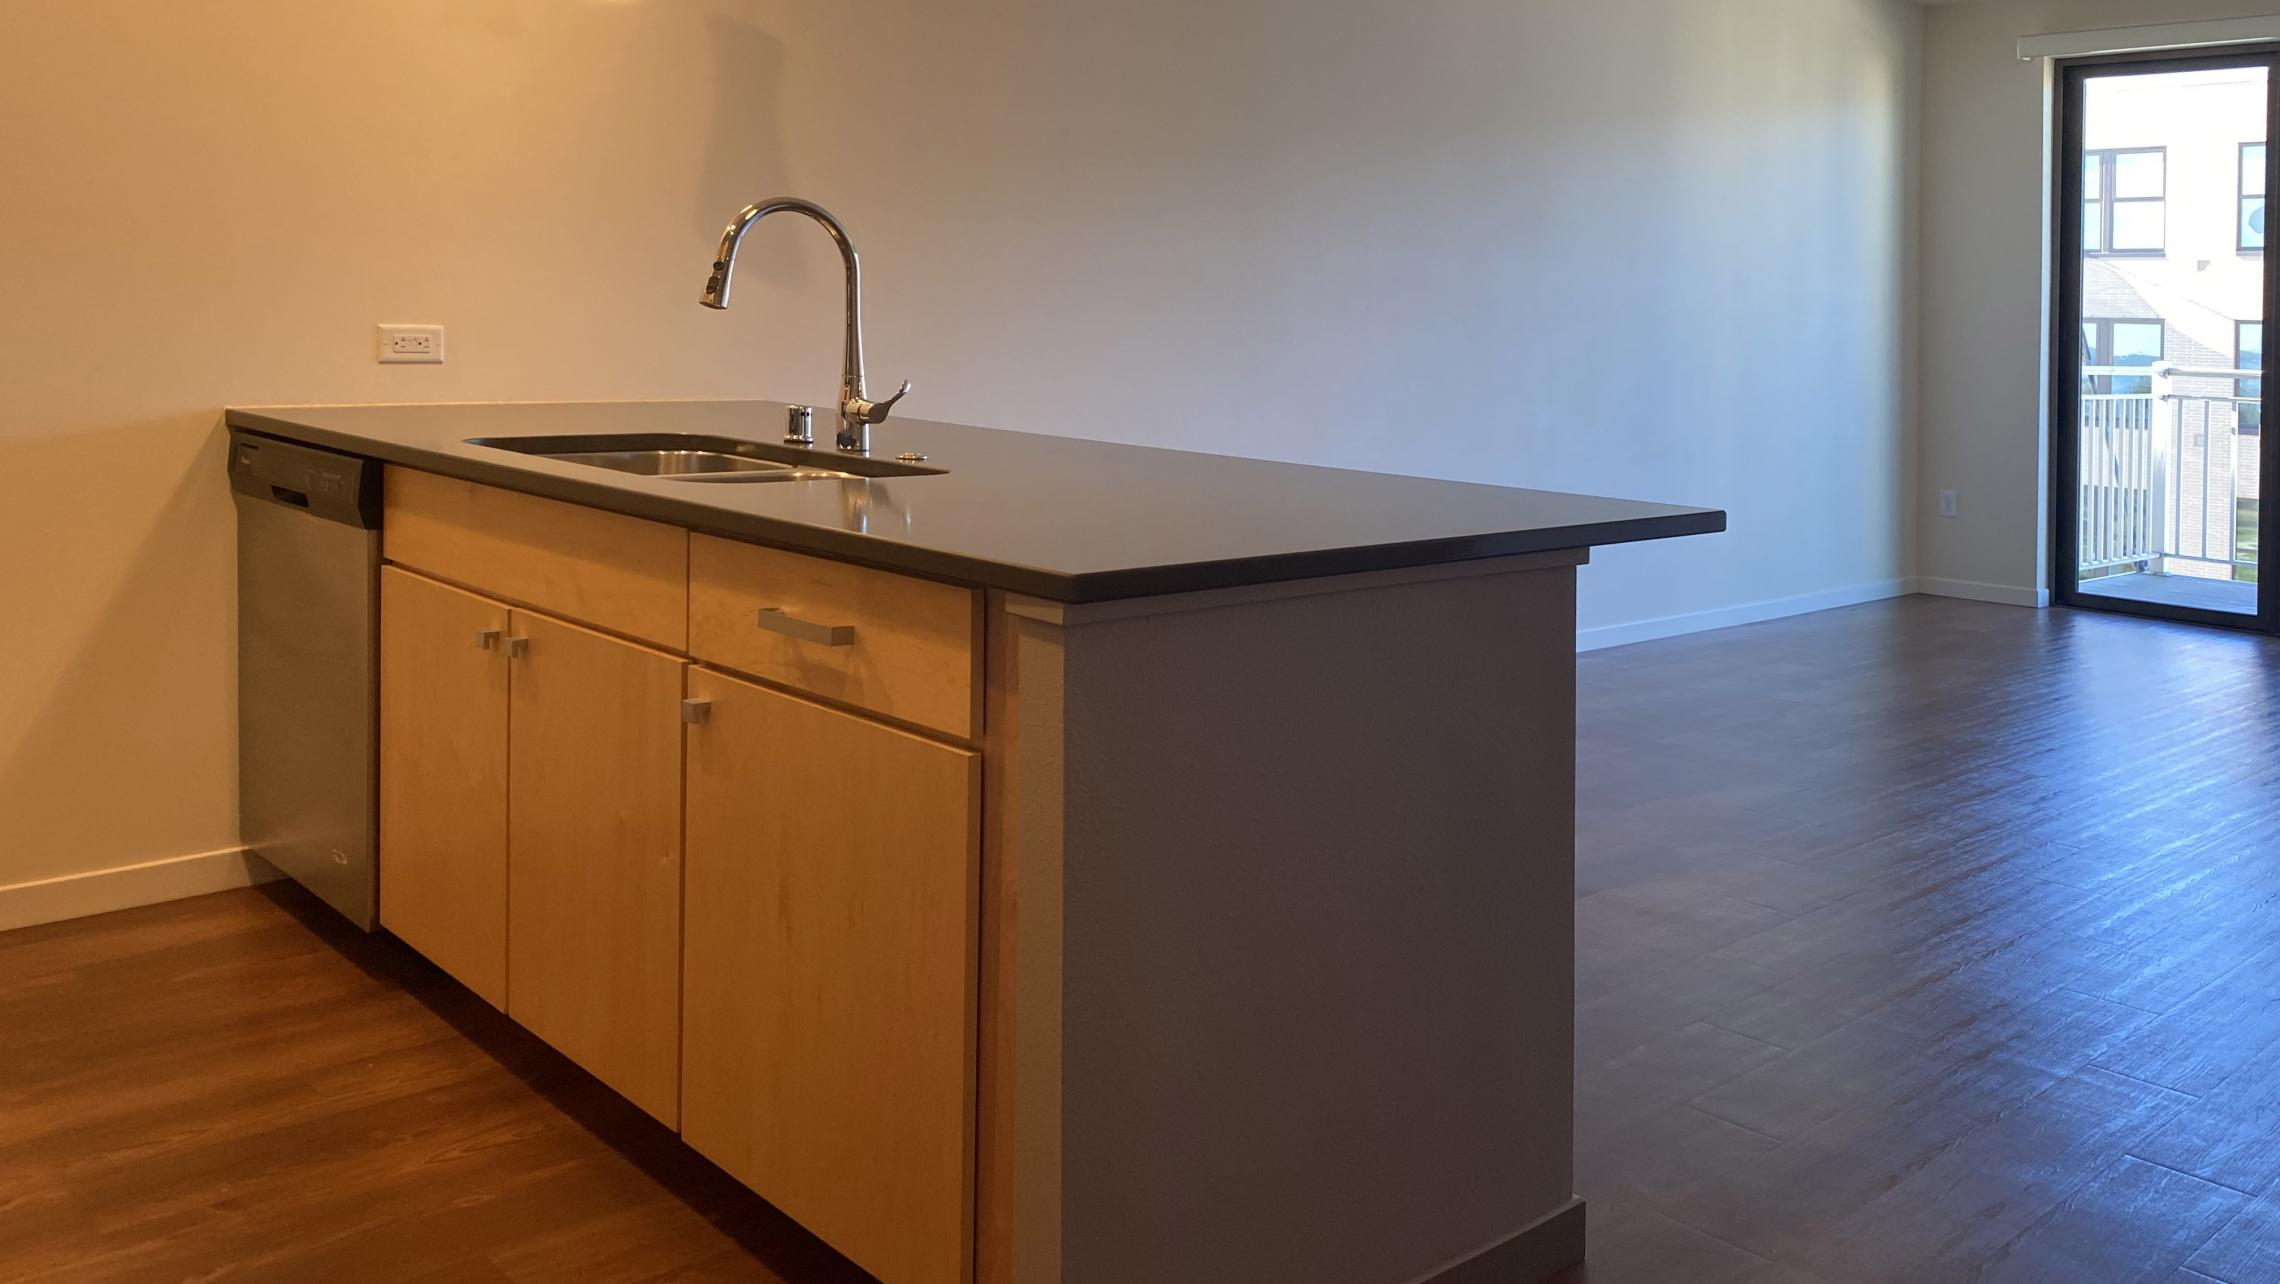 Nine-Line-at-The-Yards-Apartment-424-Two-Bedroom-Lake-View-Natural-Light-Sunny-Modern-Upscale-Designe-Luxury-Luxurious-Balcony-Views-Fitness-Lounge-Courtyard-Dogs-Cats-Bike-Trail-Downtown-Capitol